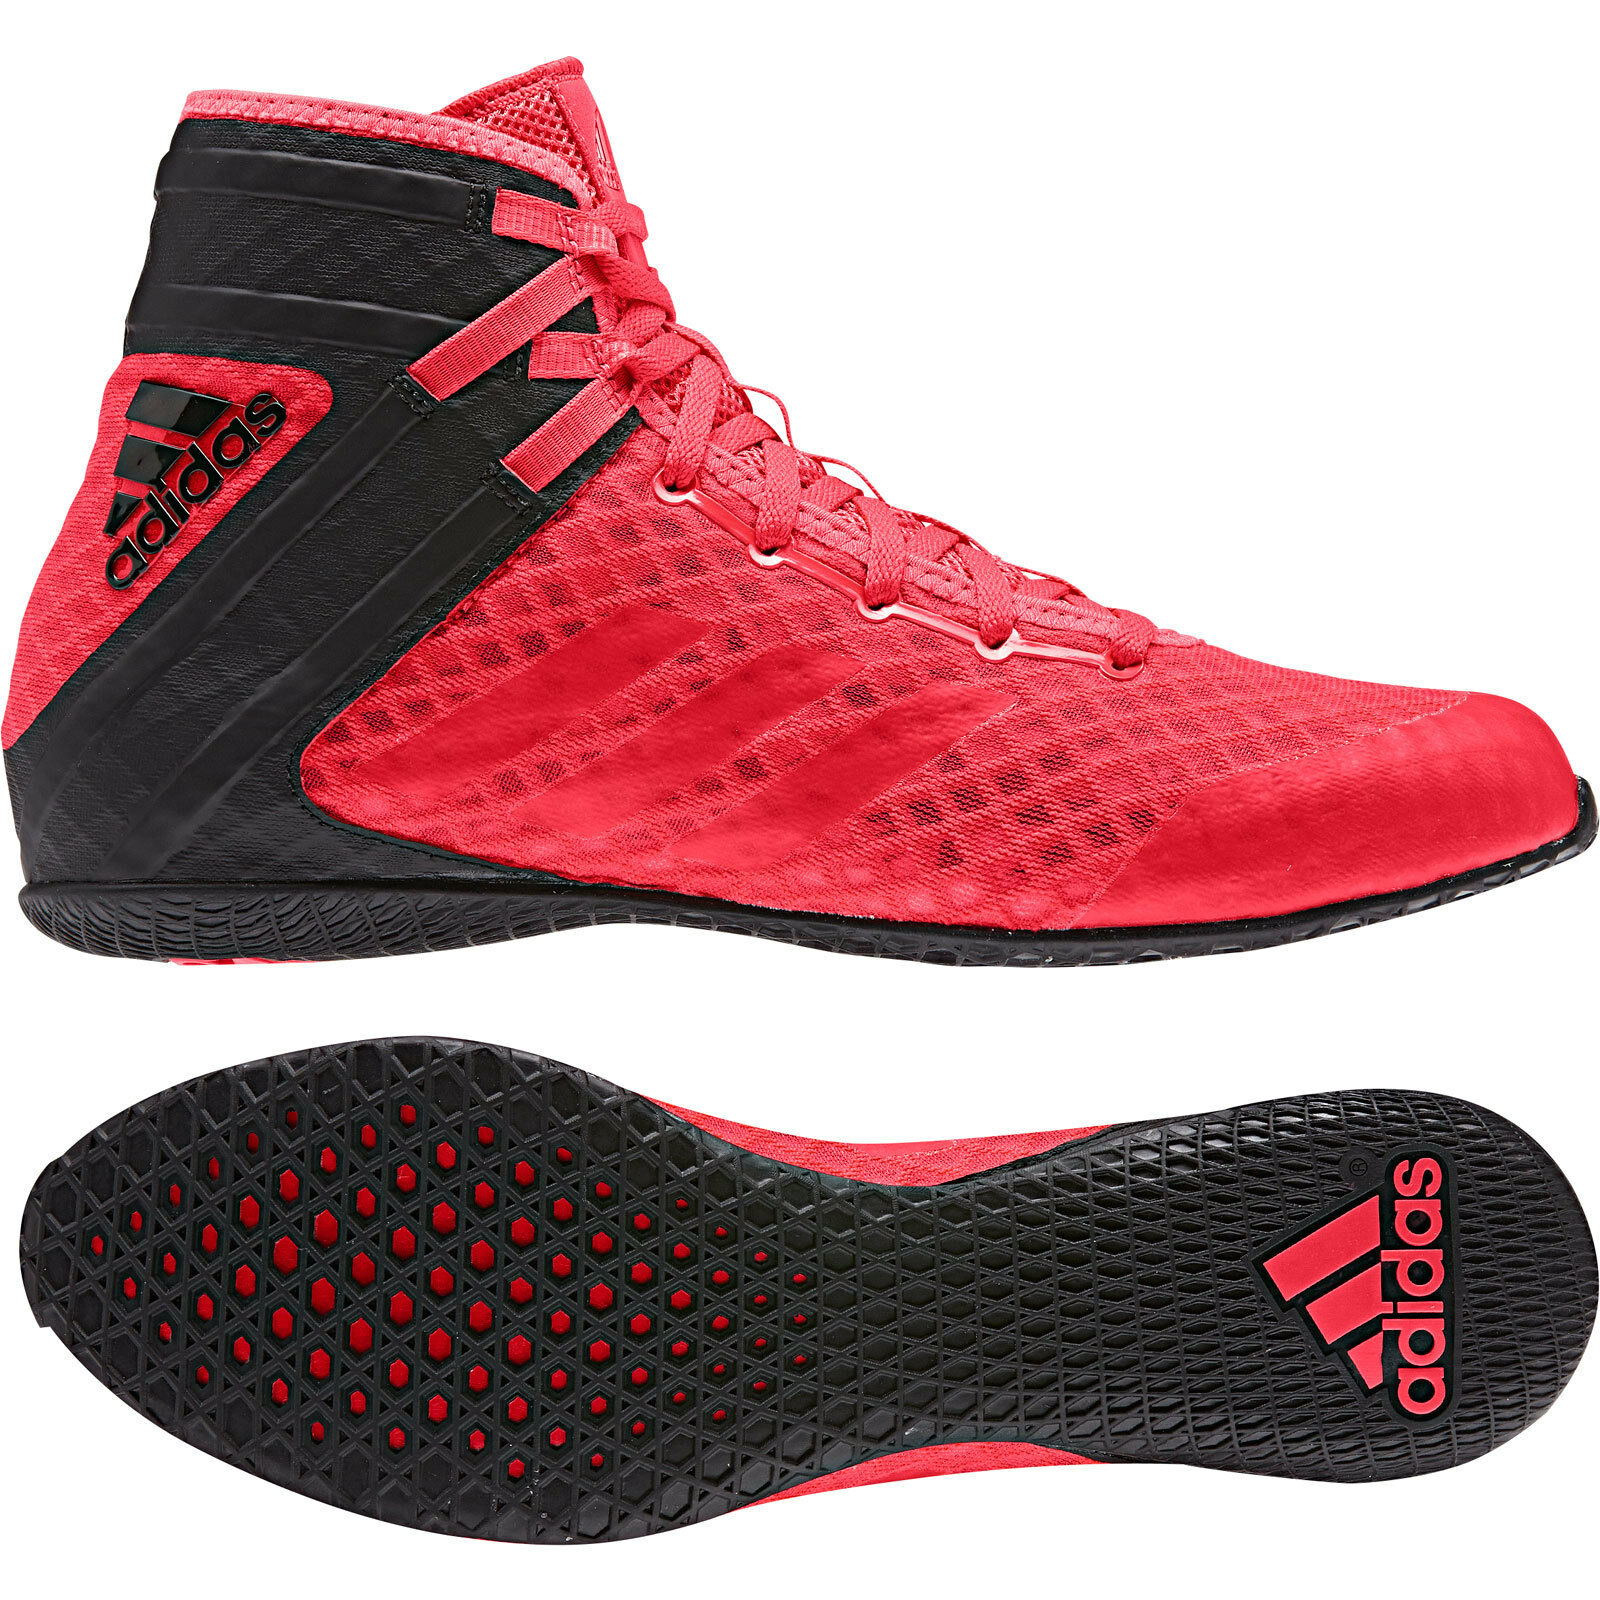 Adidas Speedex 16.1 Boxing Boots Mens Black & Red Sports shoes Trainers